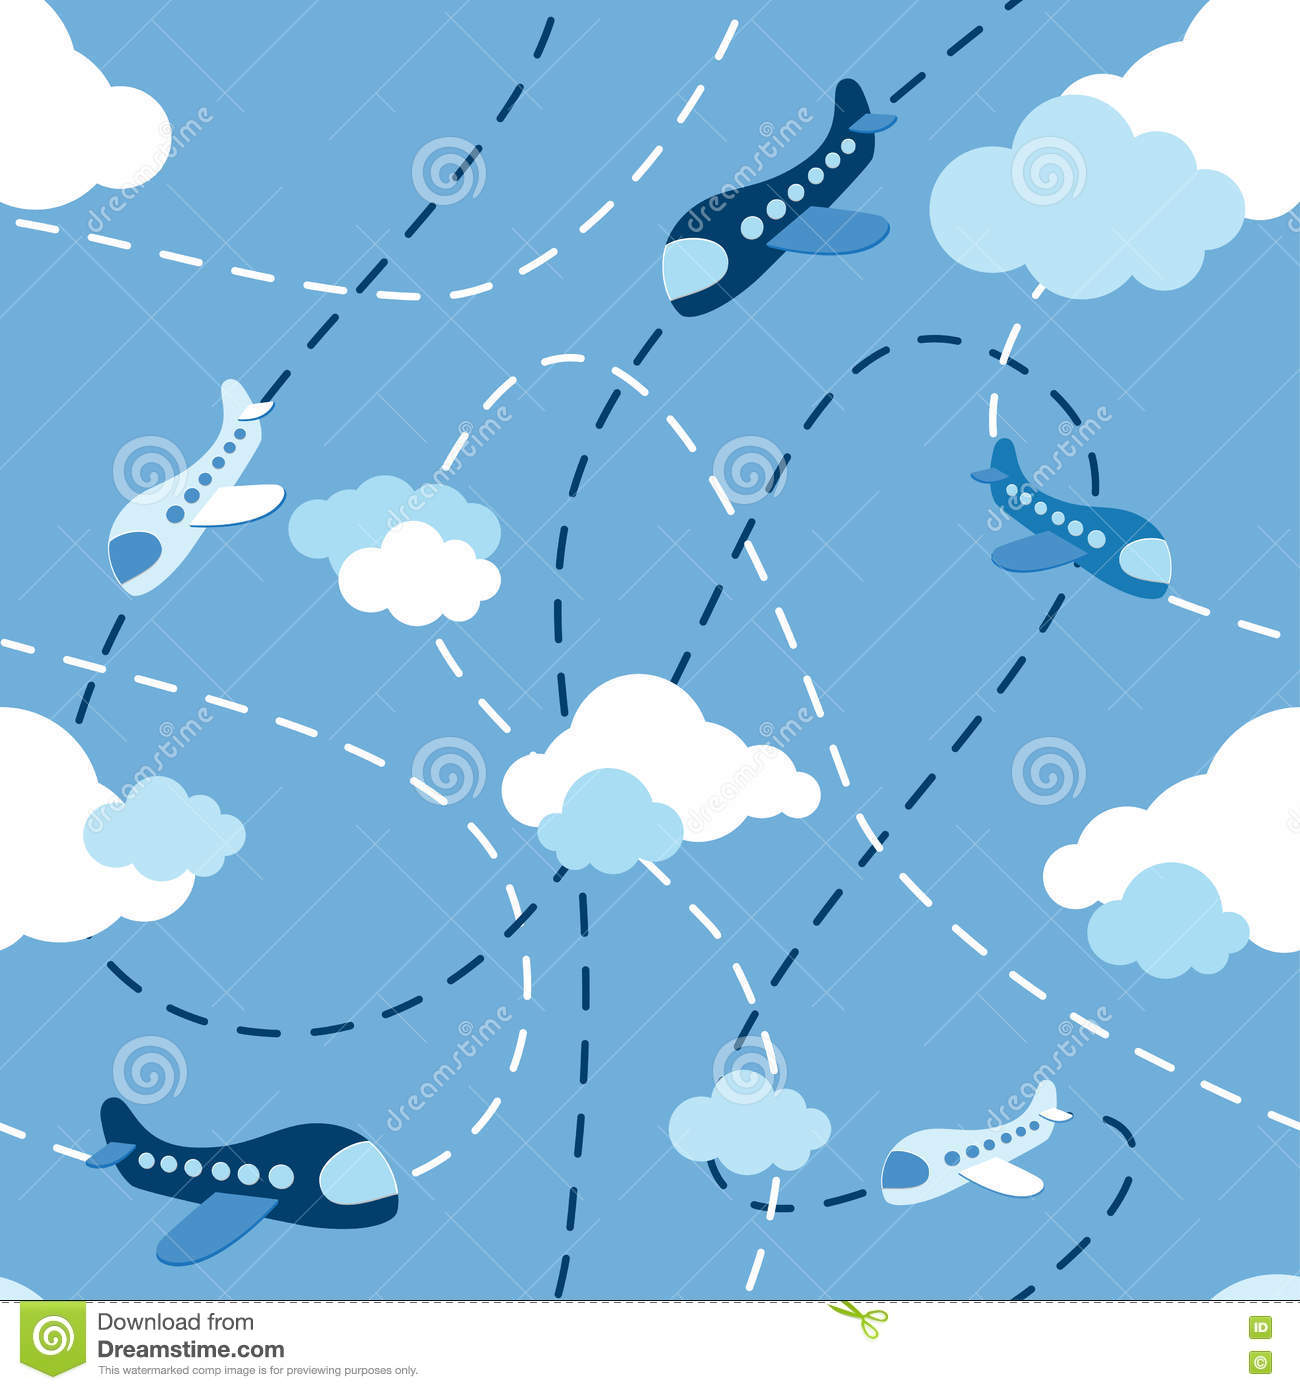 Seamless Airplane Pattern Aircraft In Clouds Cartoons Style On Blue Background Kids Boy Plane Route Flying Machine Sky